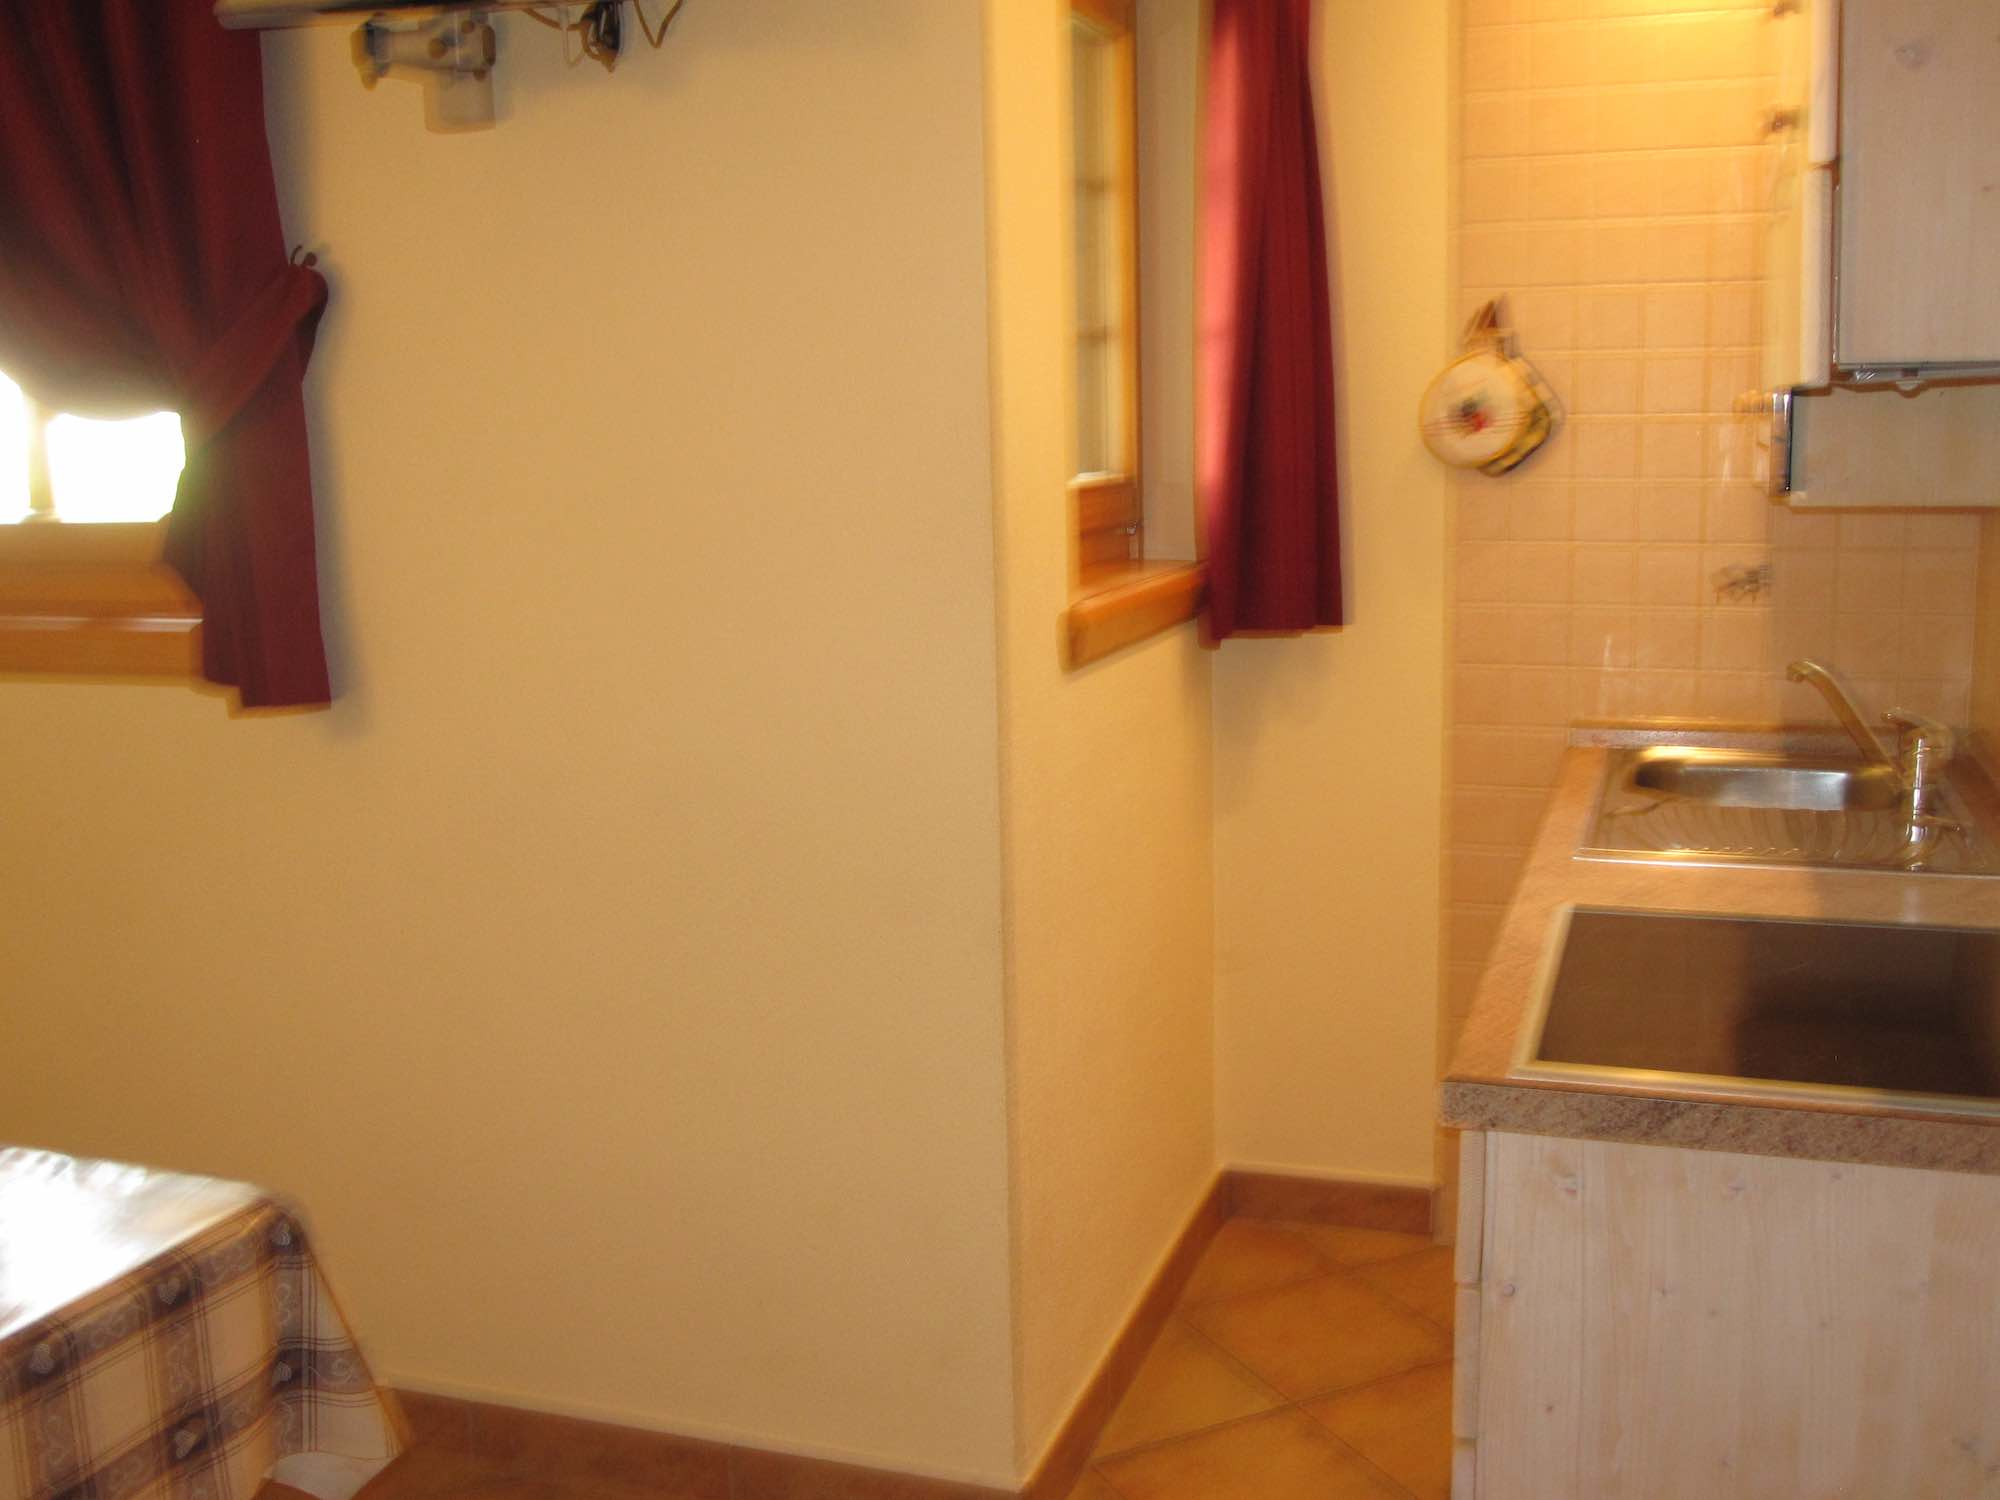 Baita La Broina - Via Florin, 24 - Apartment - Appartamento 4 1